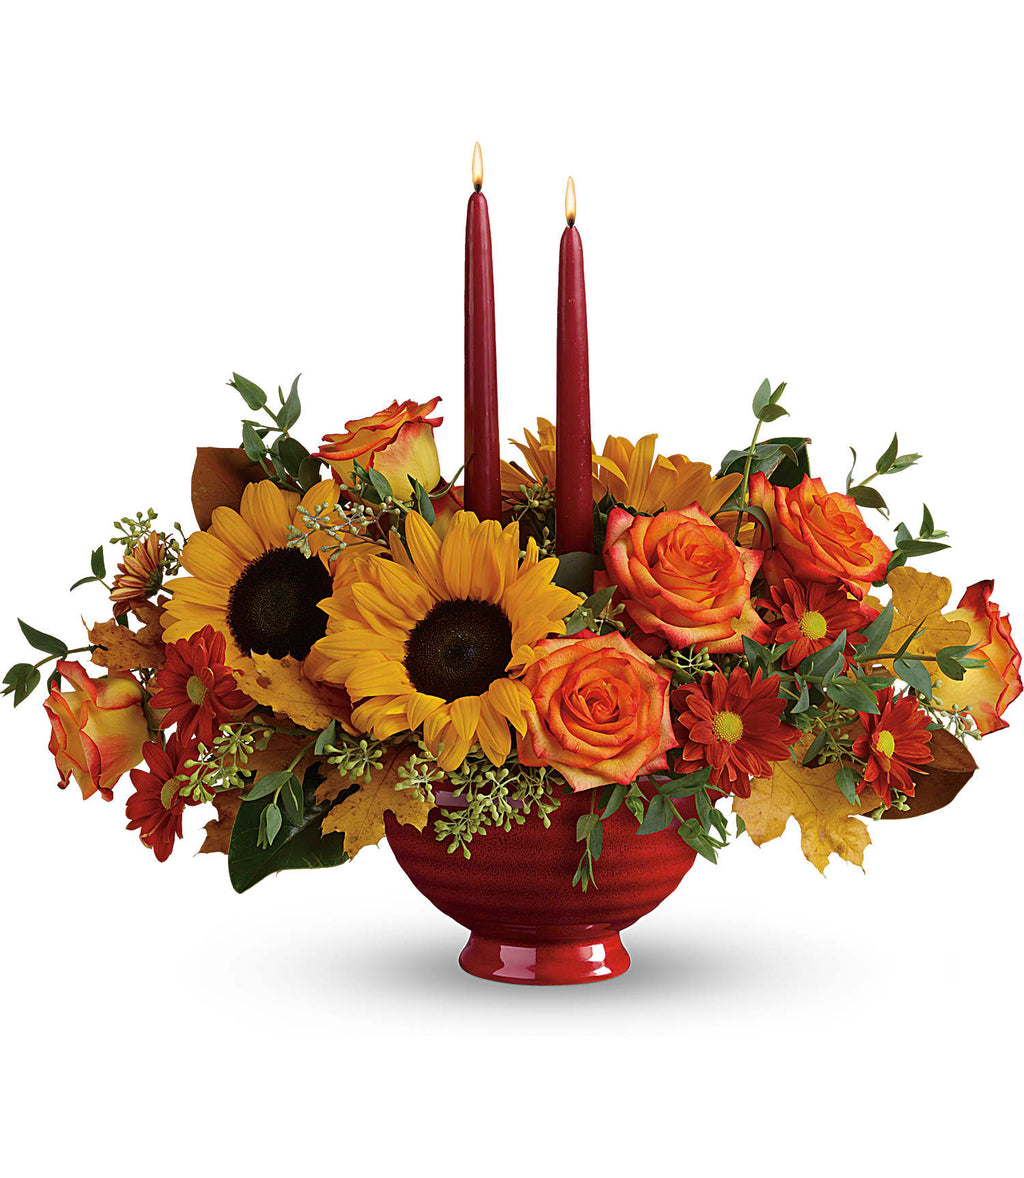 Earthly Autumn Centerpiece